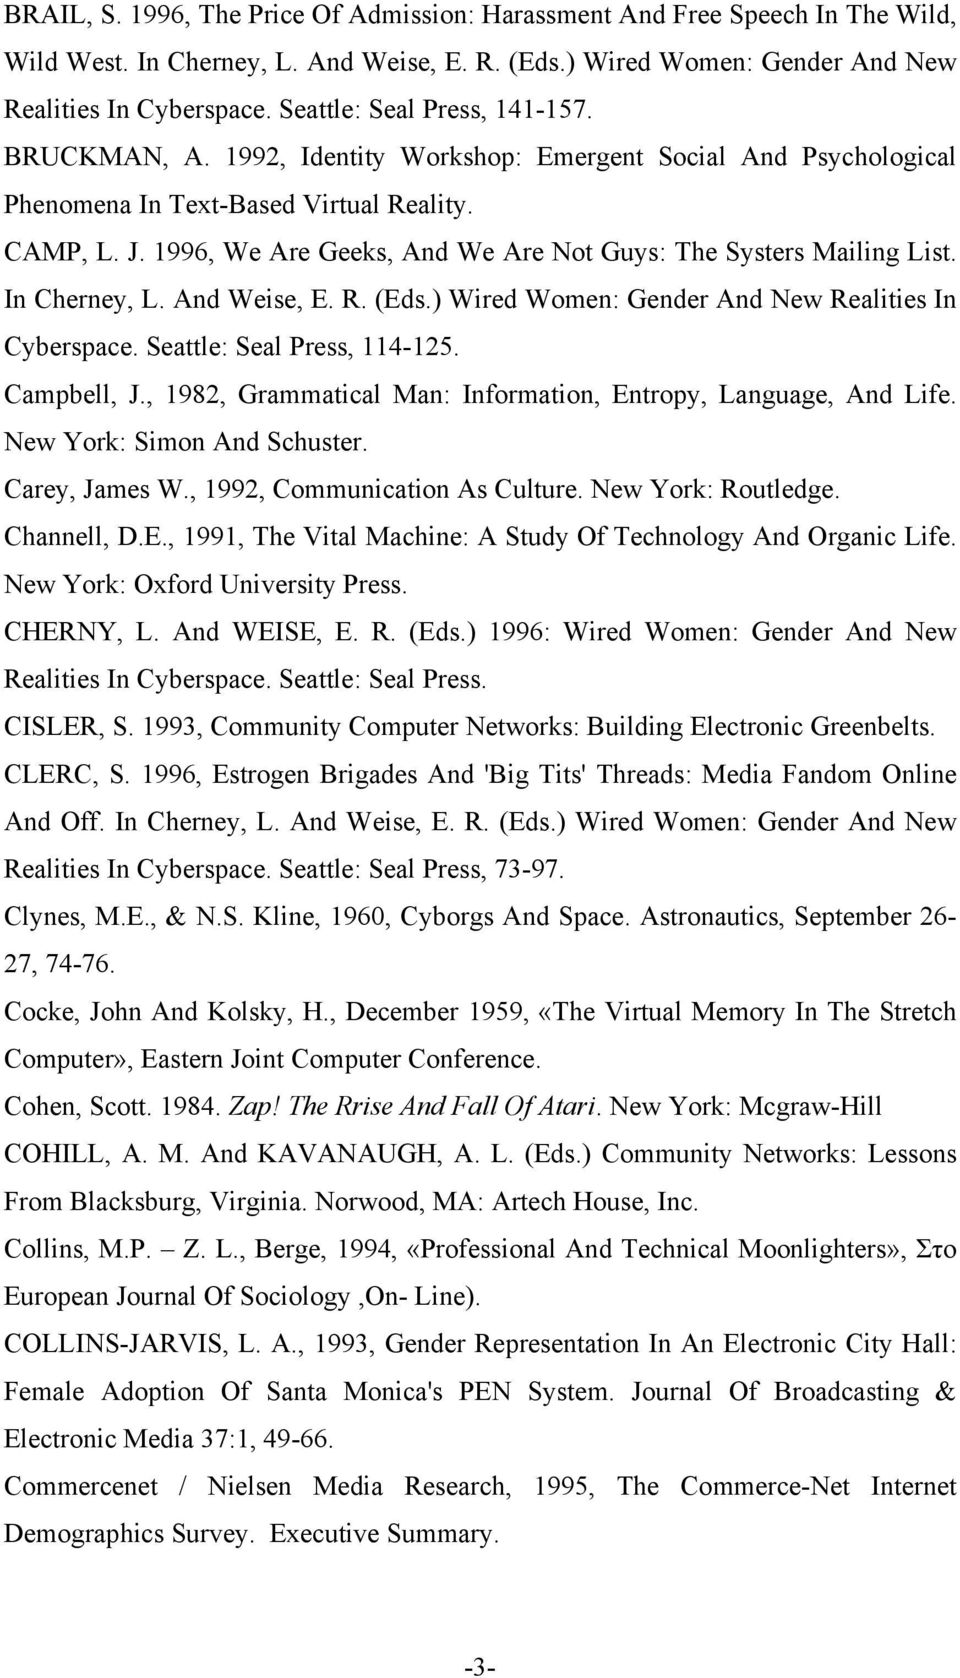 1996, We Are Geeks, And We Are Not Guys: The Systers Mailing List. In Cherney, L. And Weise, E. R. (Eds.) Wired Women: Gender And New Realities In Cyberspace. Seattle: Seal Press, 114-125.